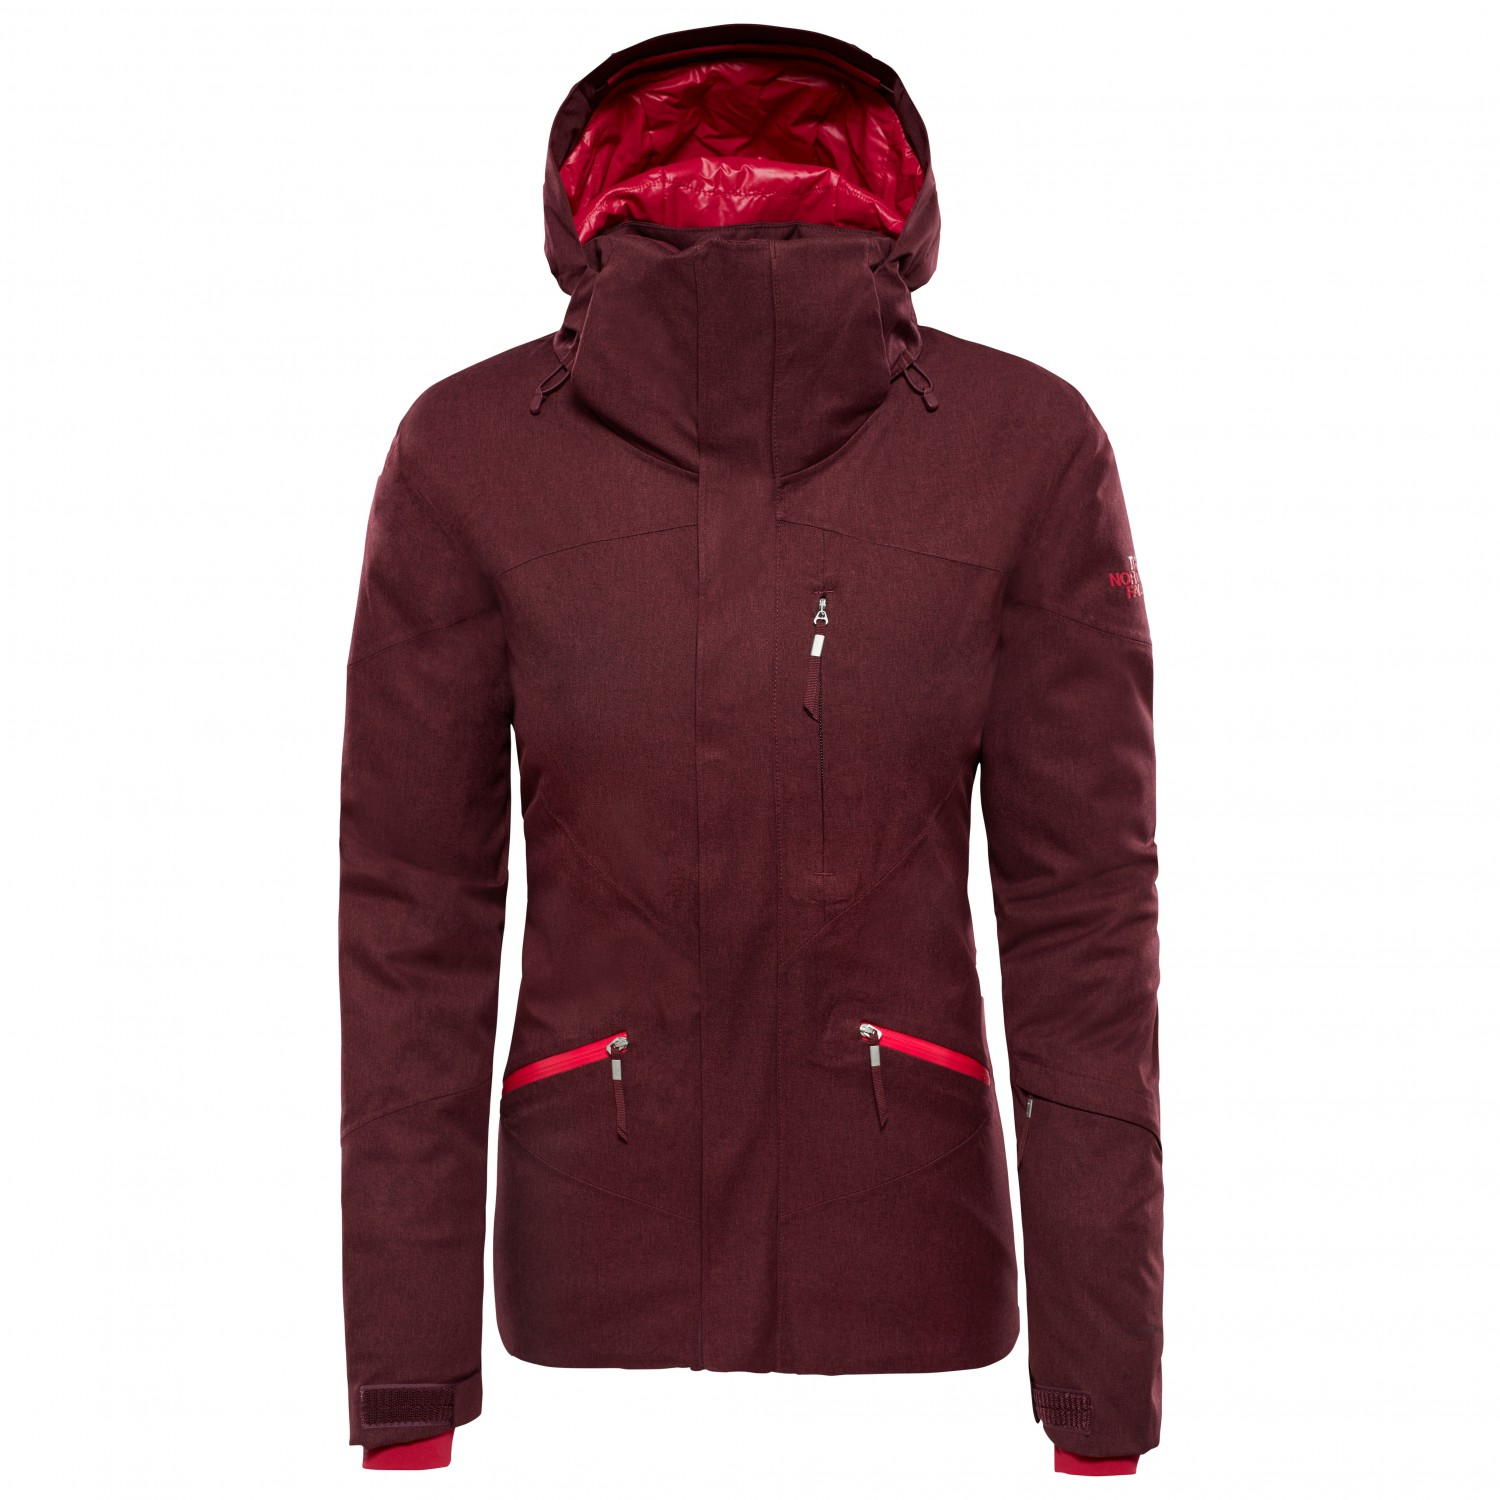 new product d6f5c 63f48 The North Face Lenado Jacket - Skijacke Damen online kaufen ...